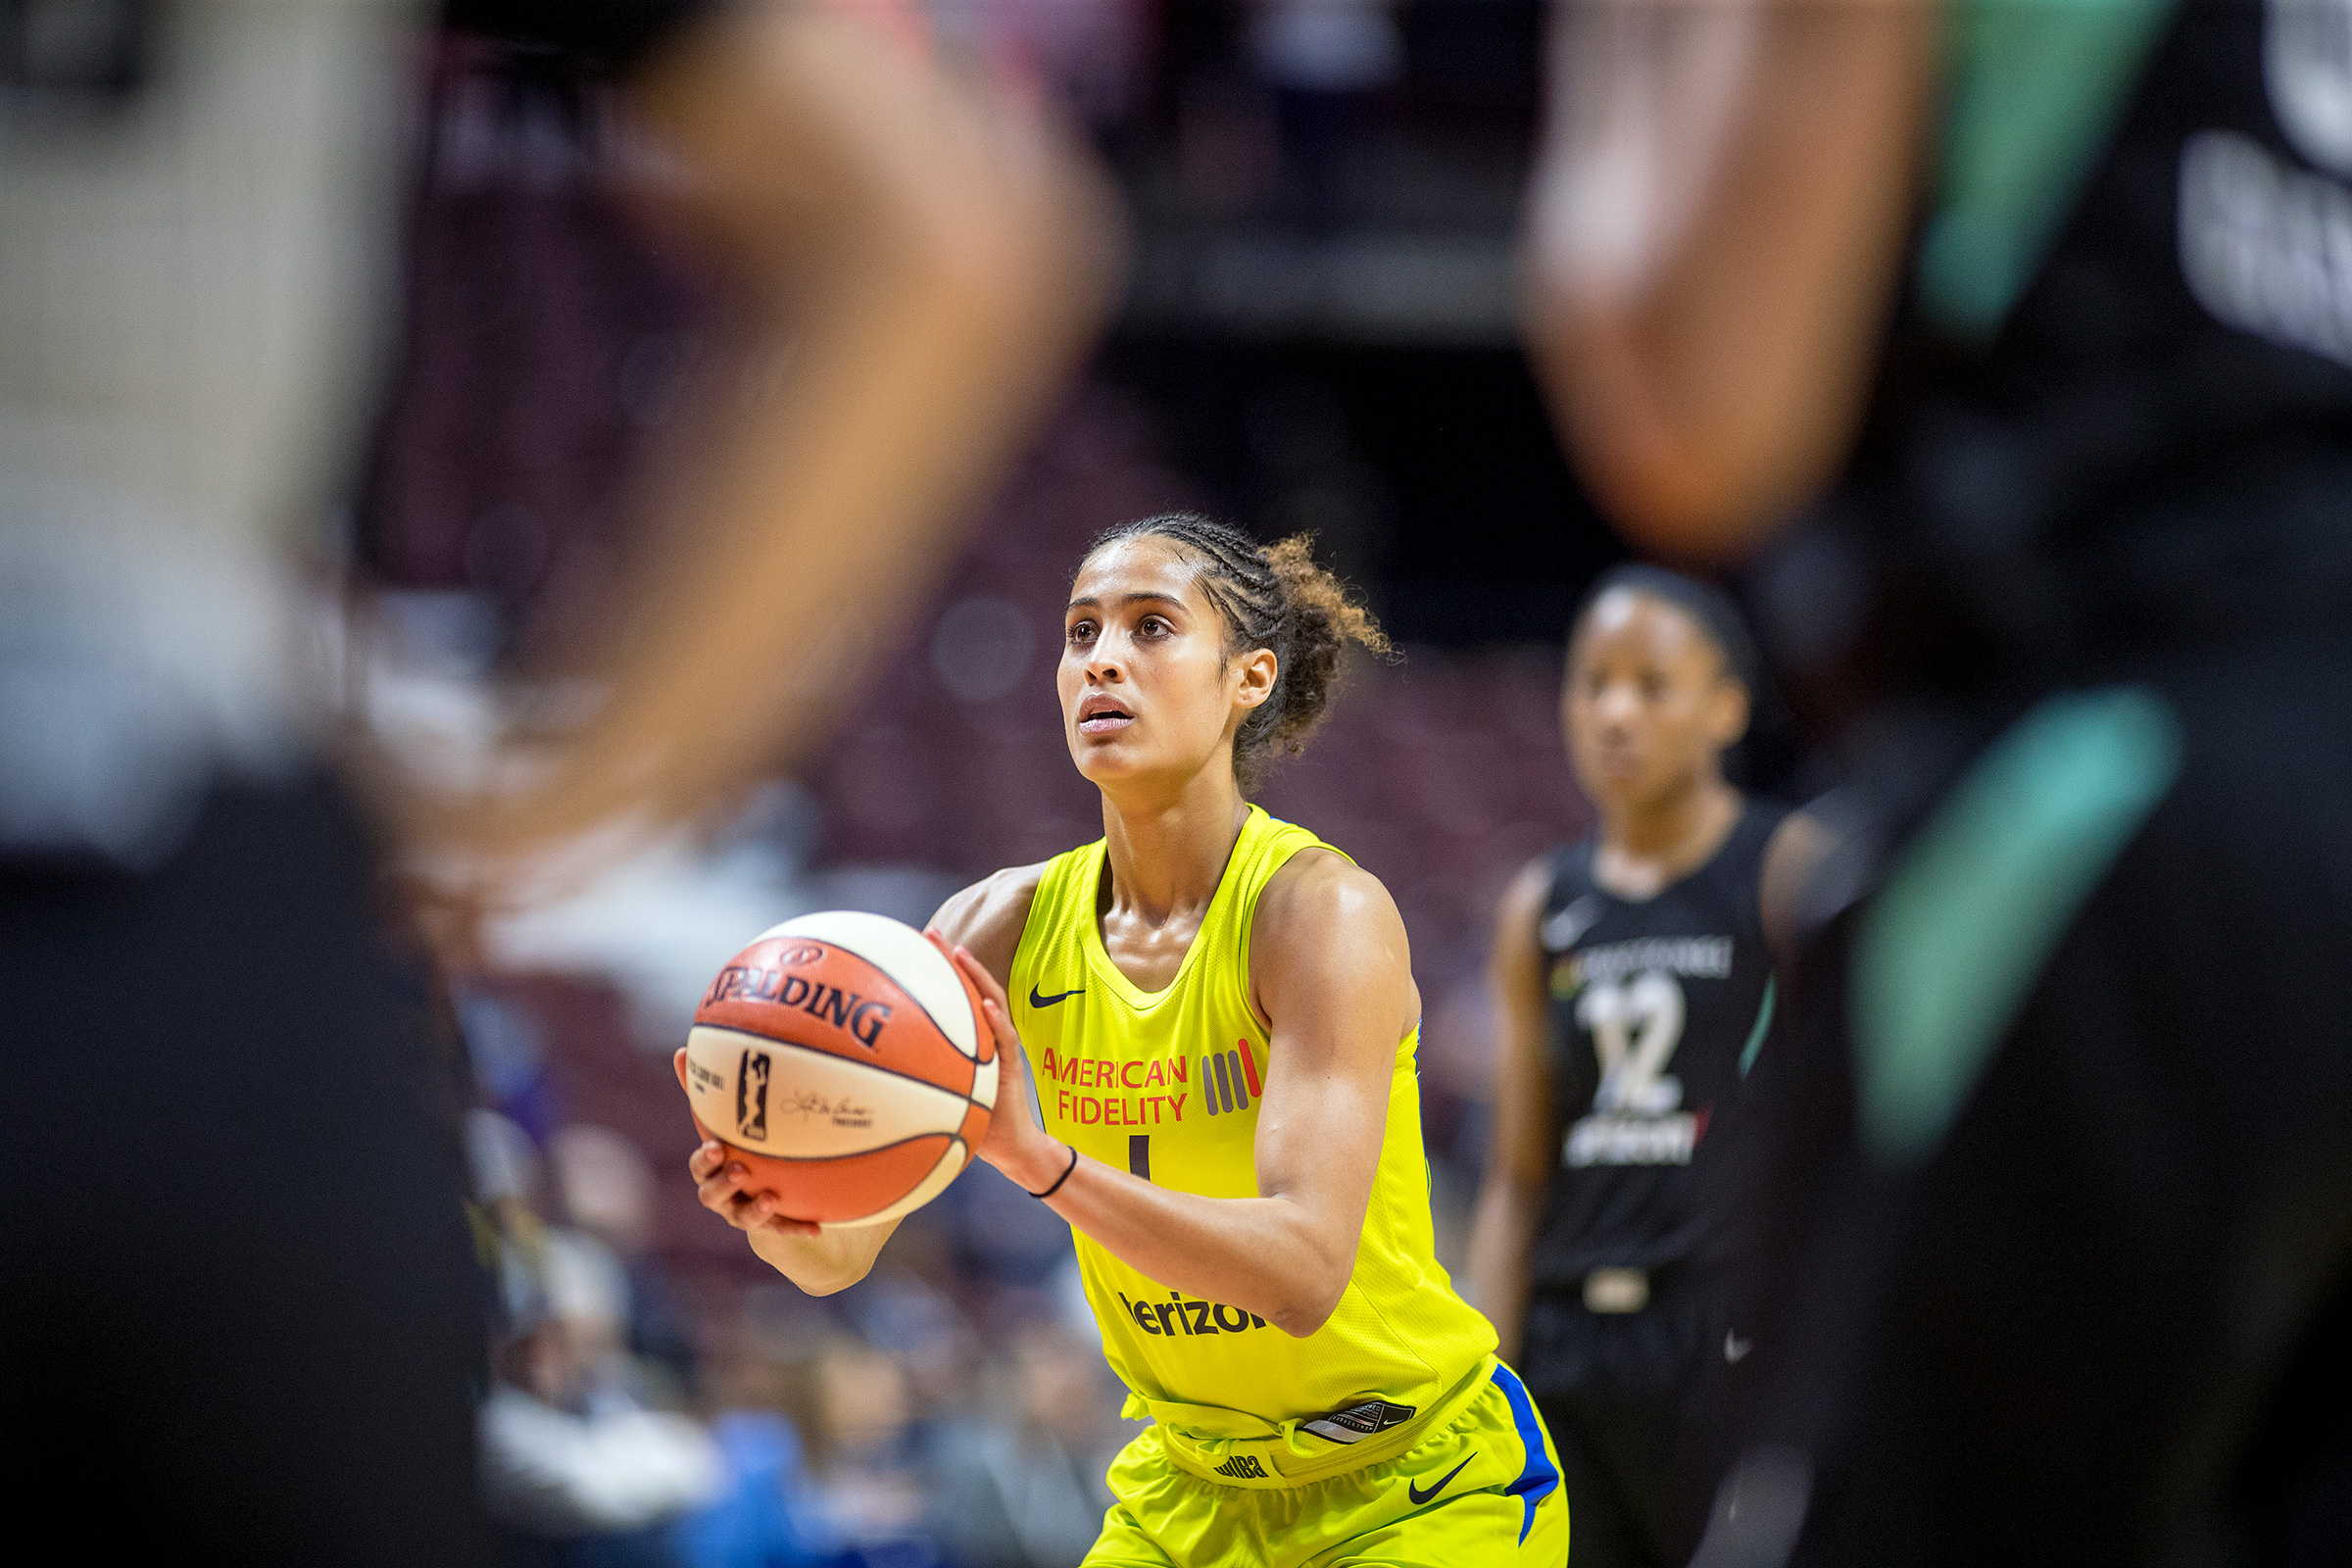 Diggins-Smith during a WNBA preseason game in 2018; she later said she played the whole season pregnant